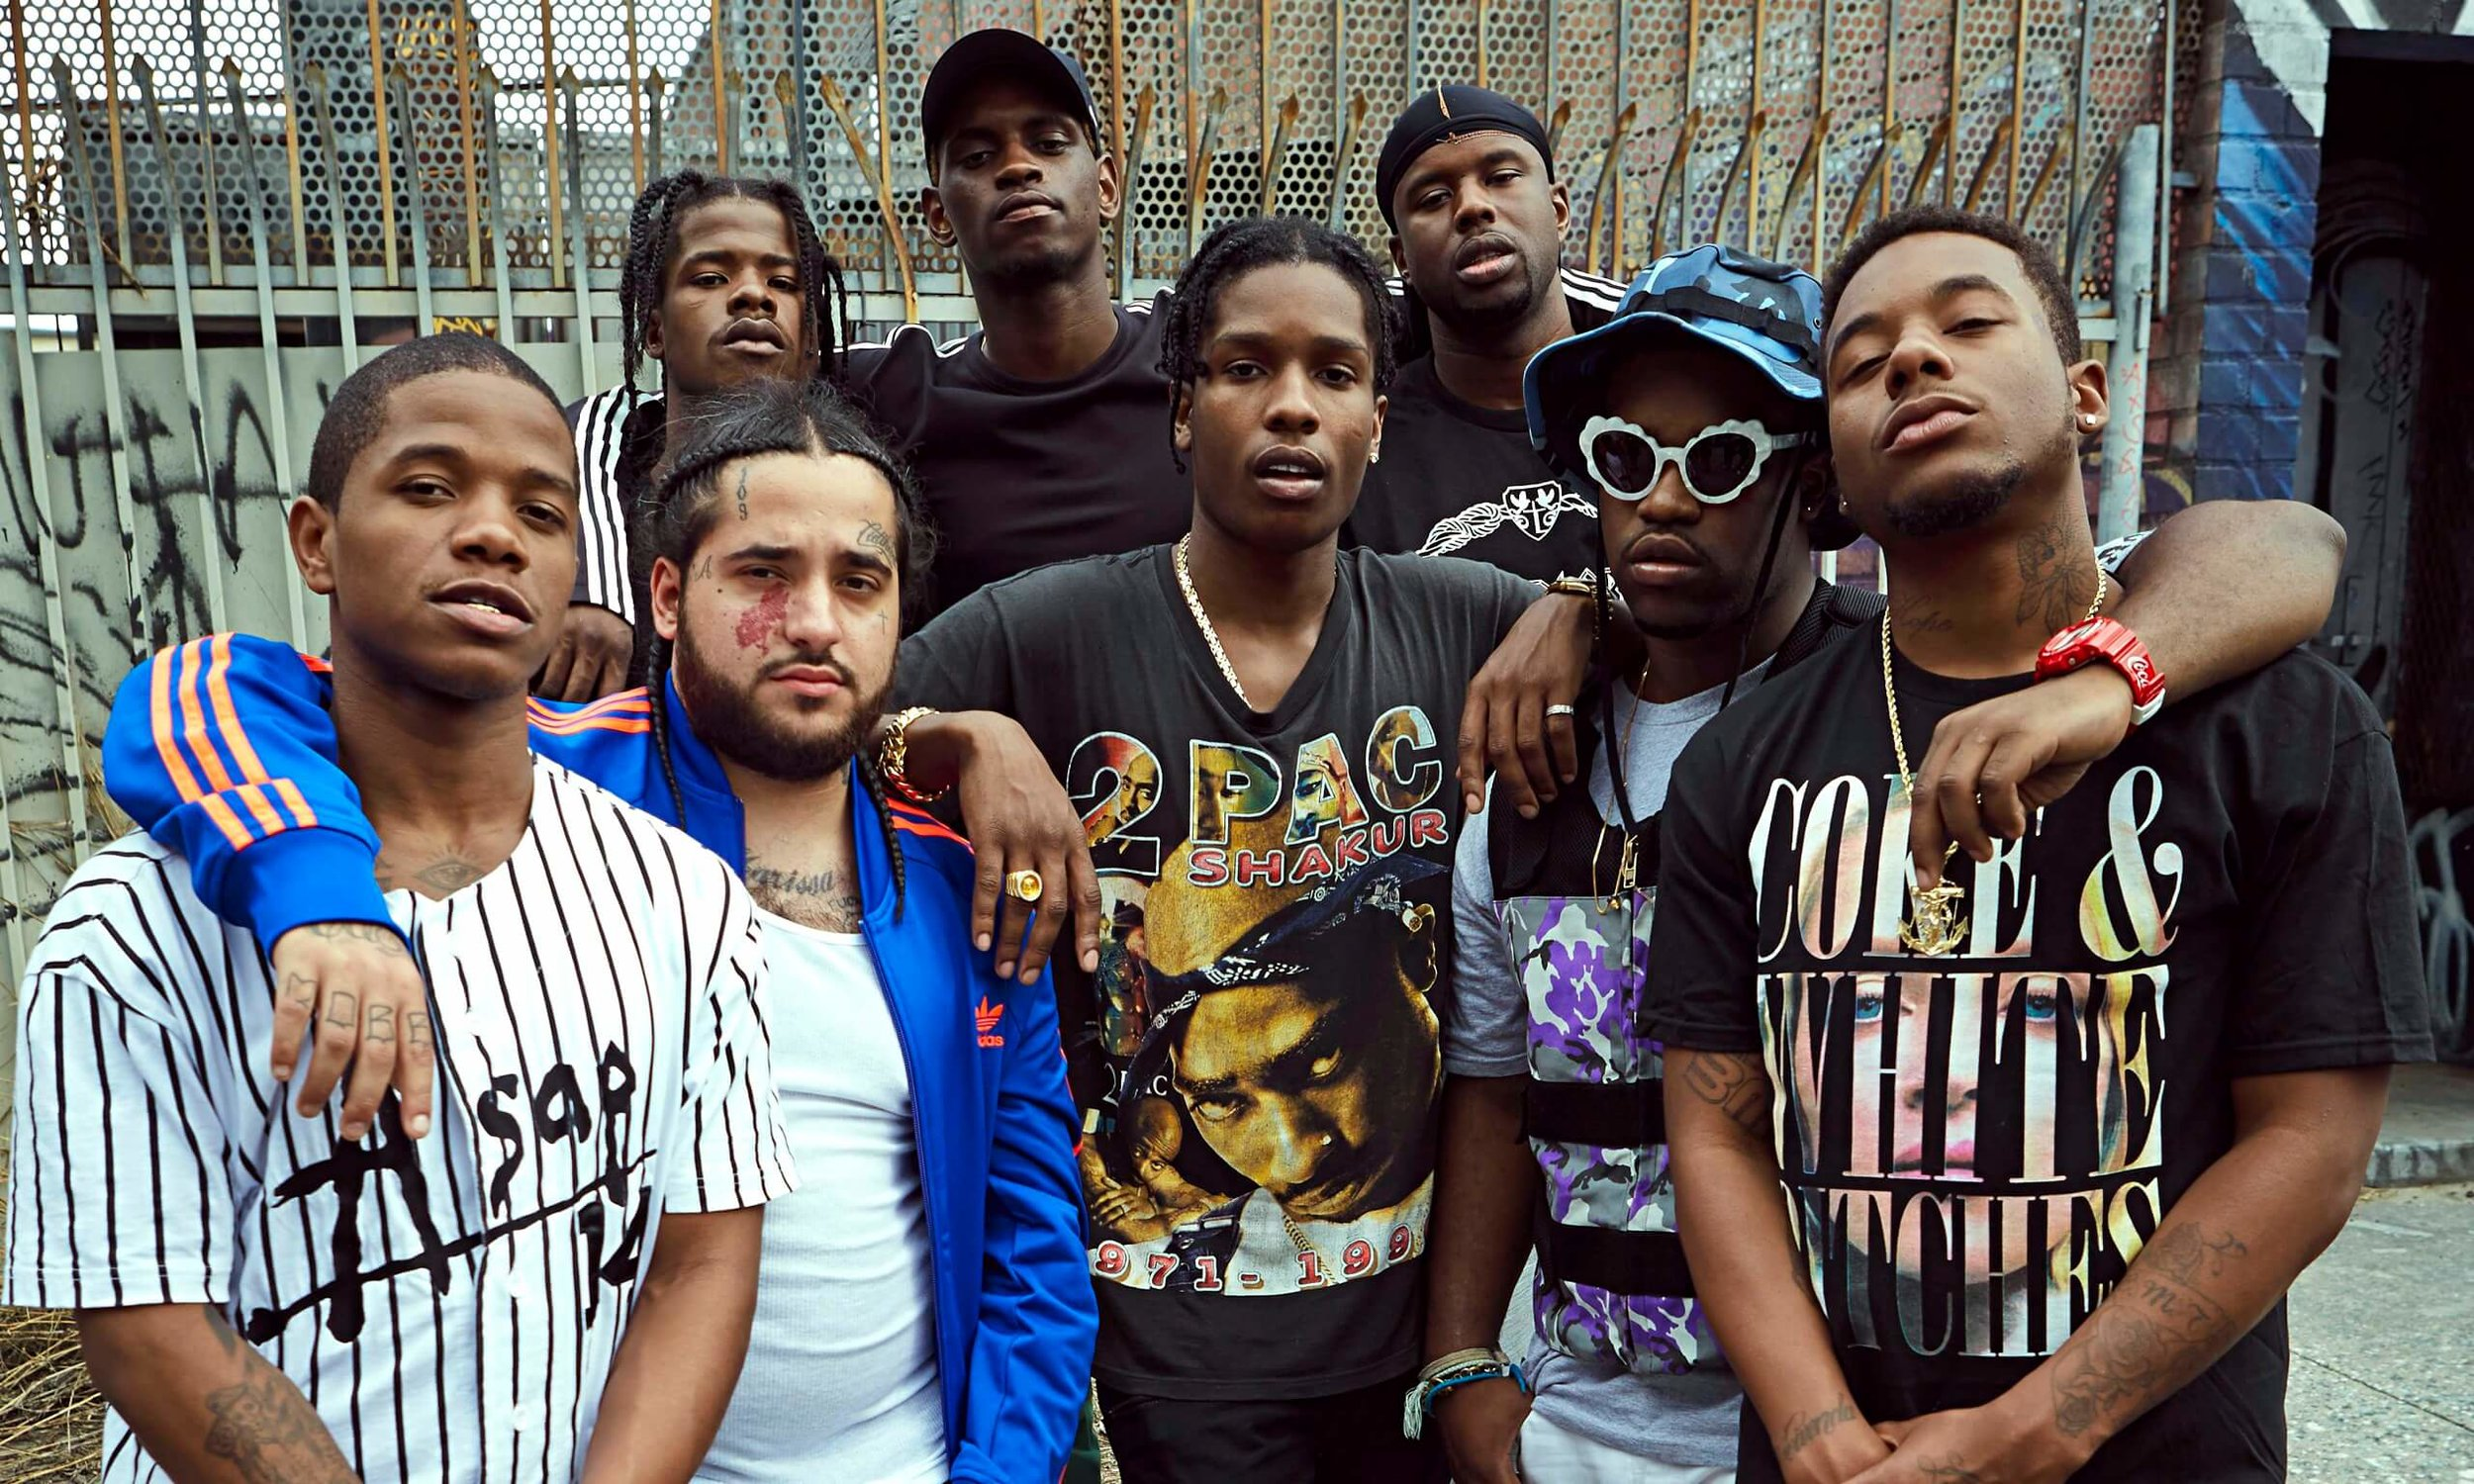 ASAP-Rocky-Feat-ASAP-Nast-And-ASAP-Ferg-Yamborghini-High-3.jpg